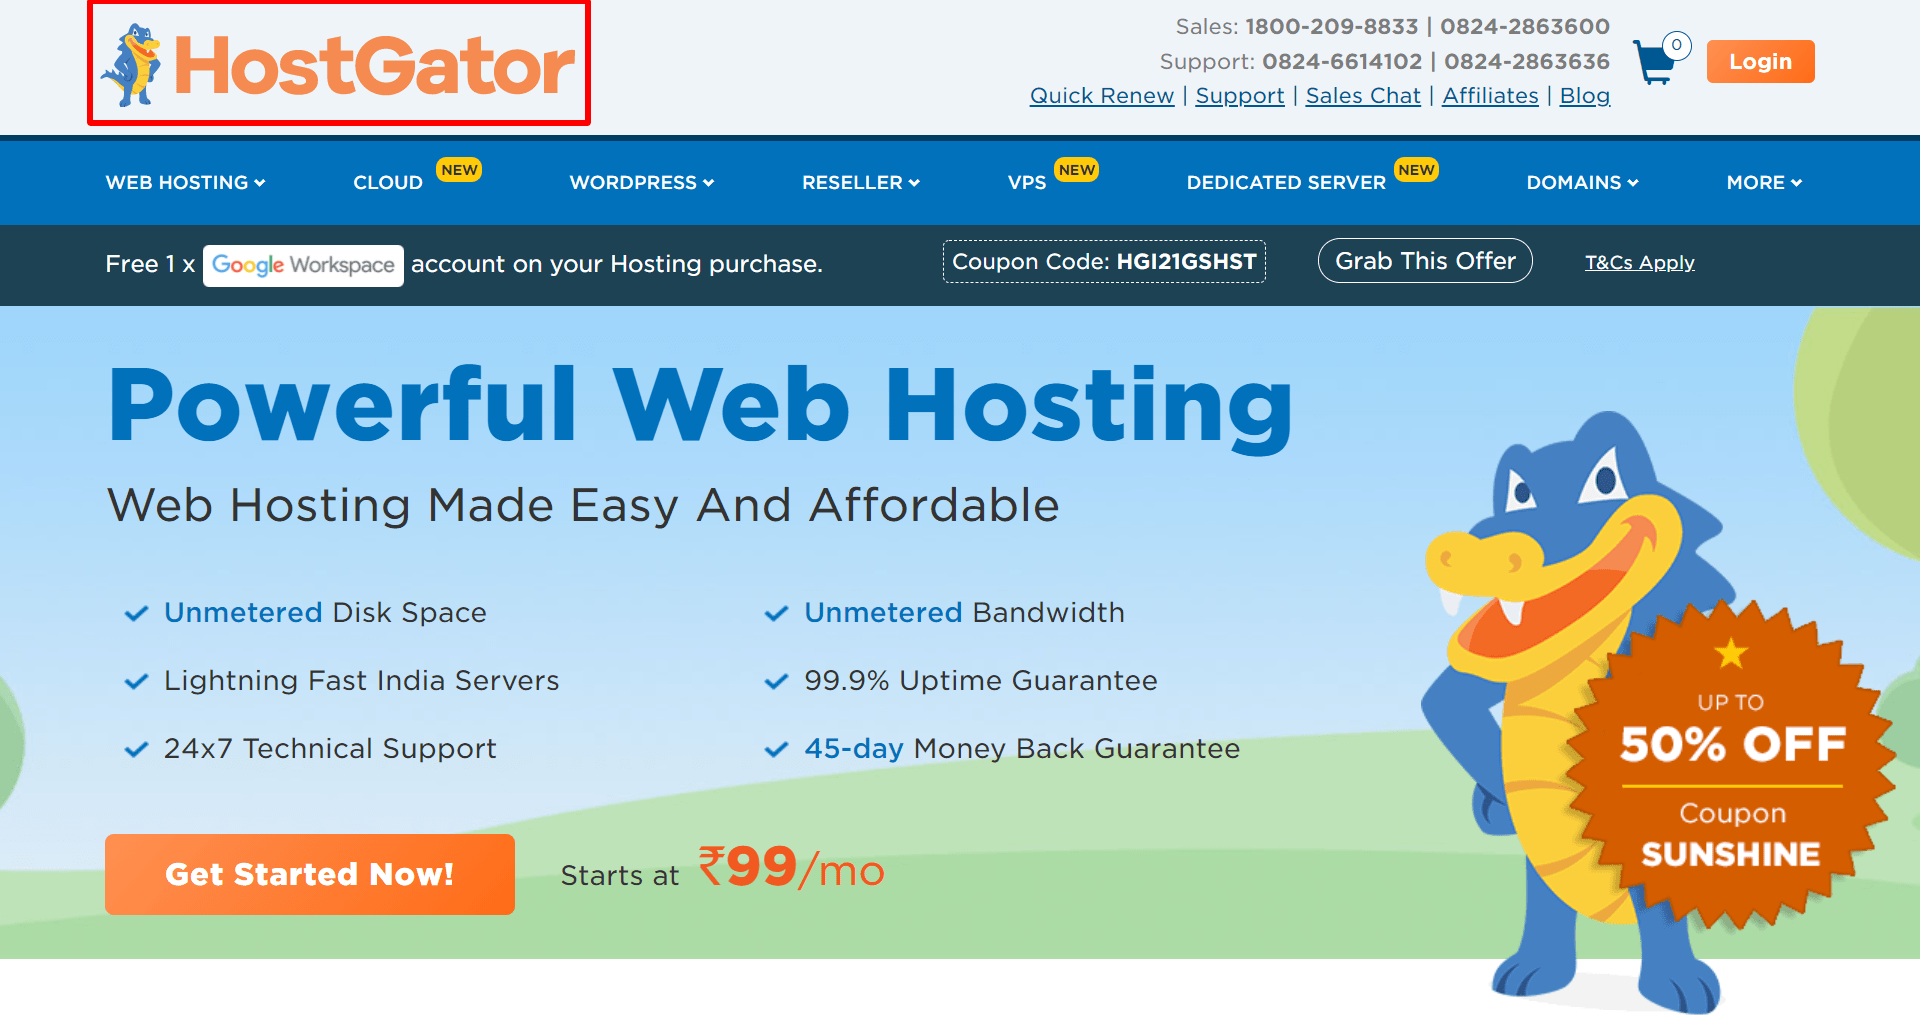 Buy-The-Best-Web-Hosting-and-Domain-Name-In-India-HostGator-India